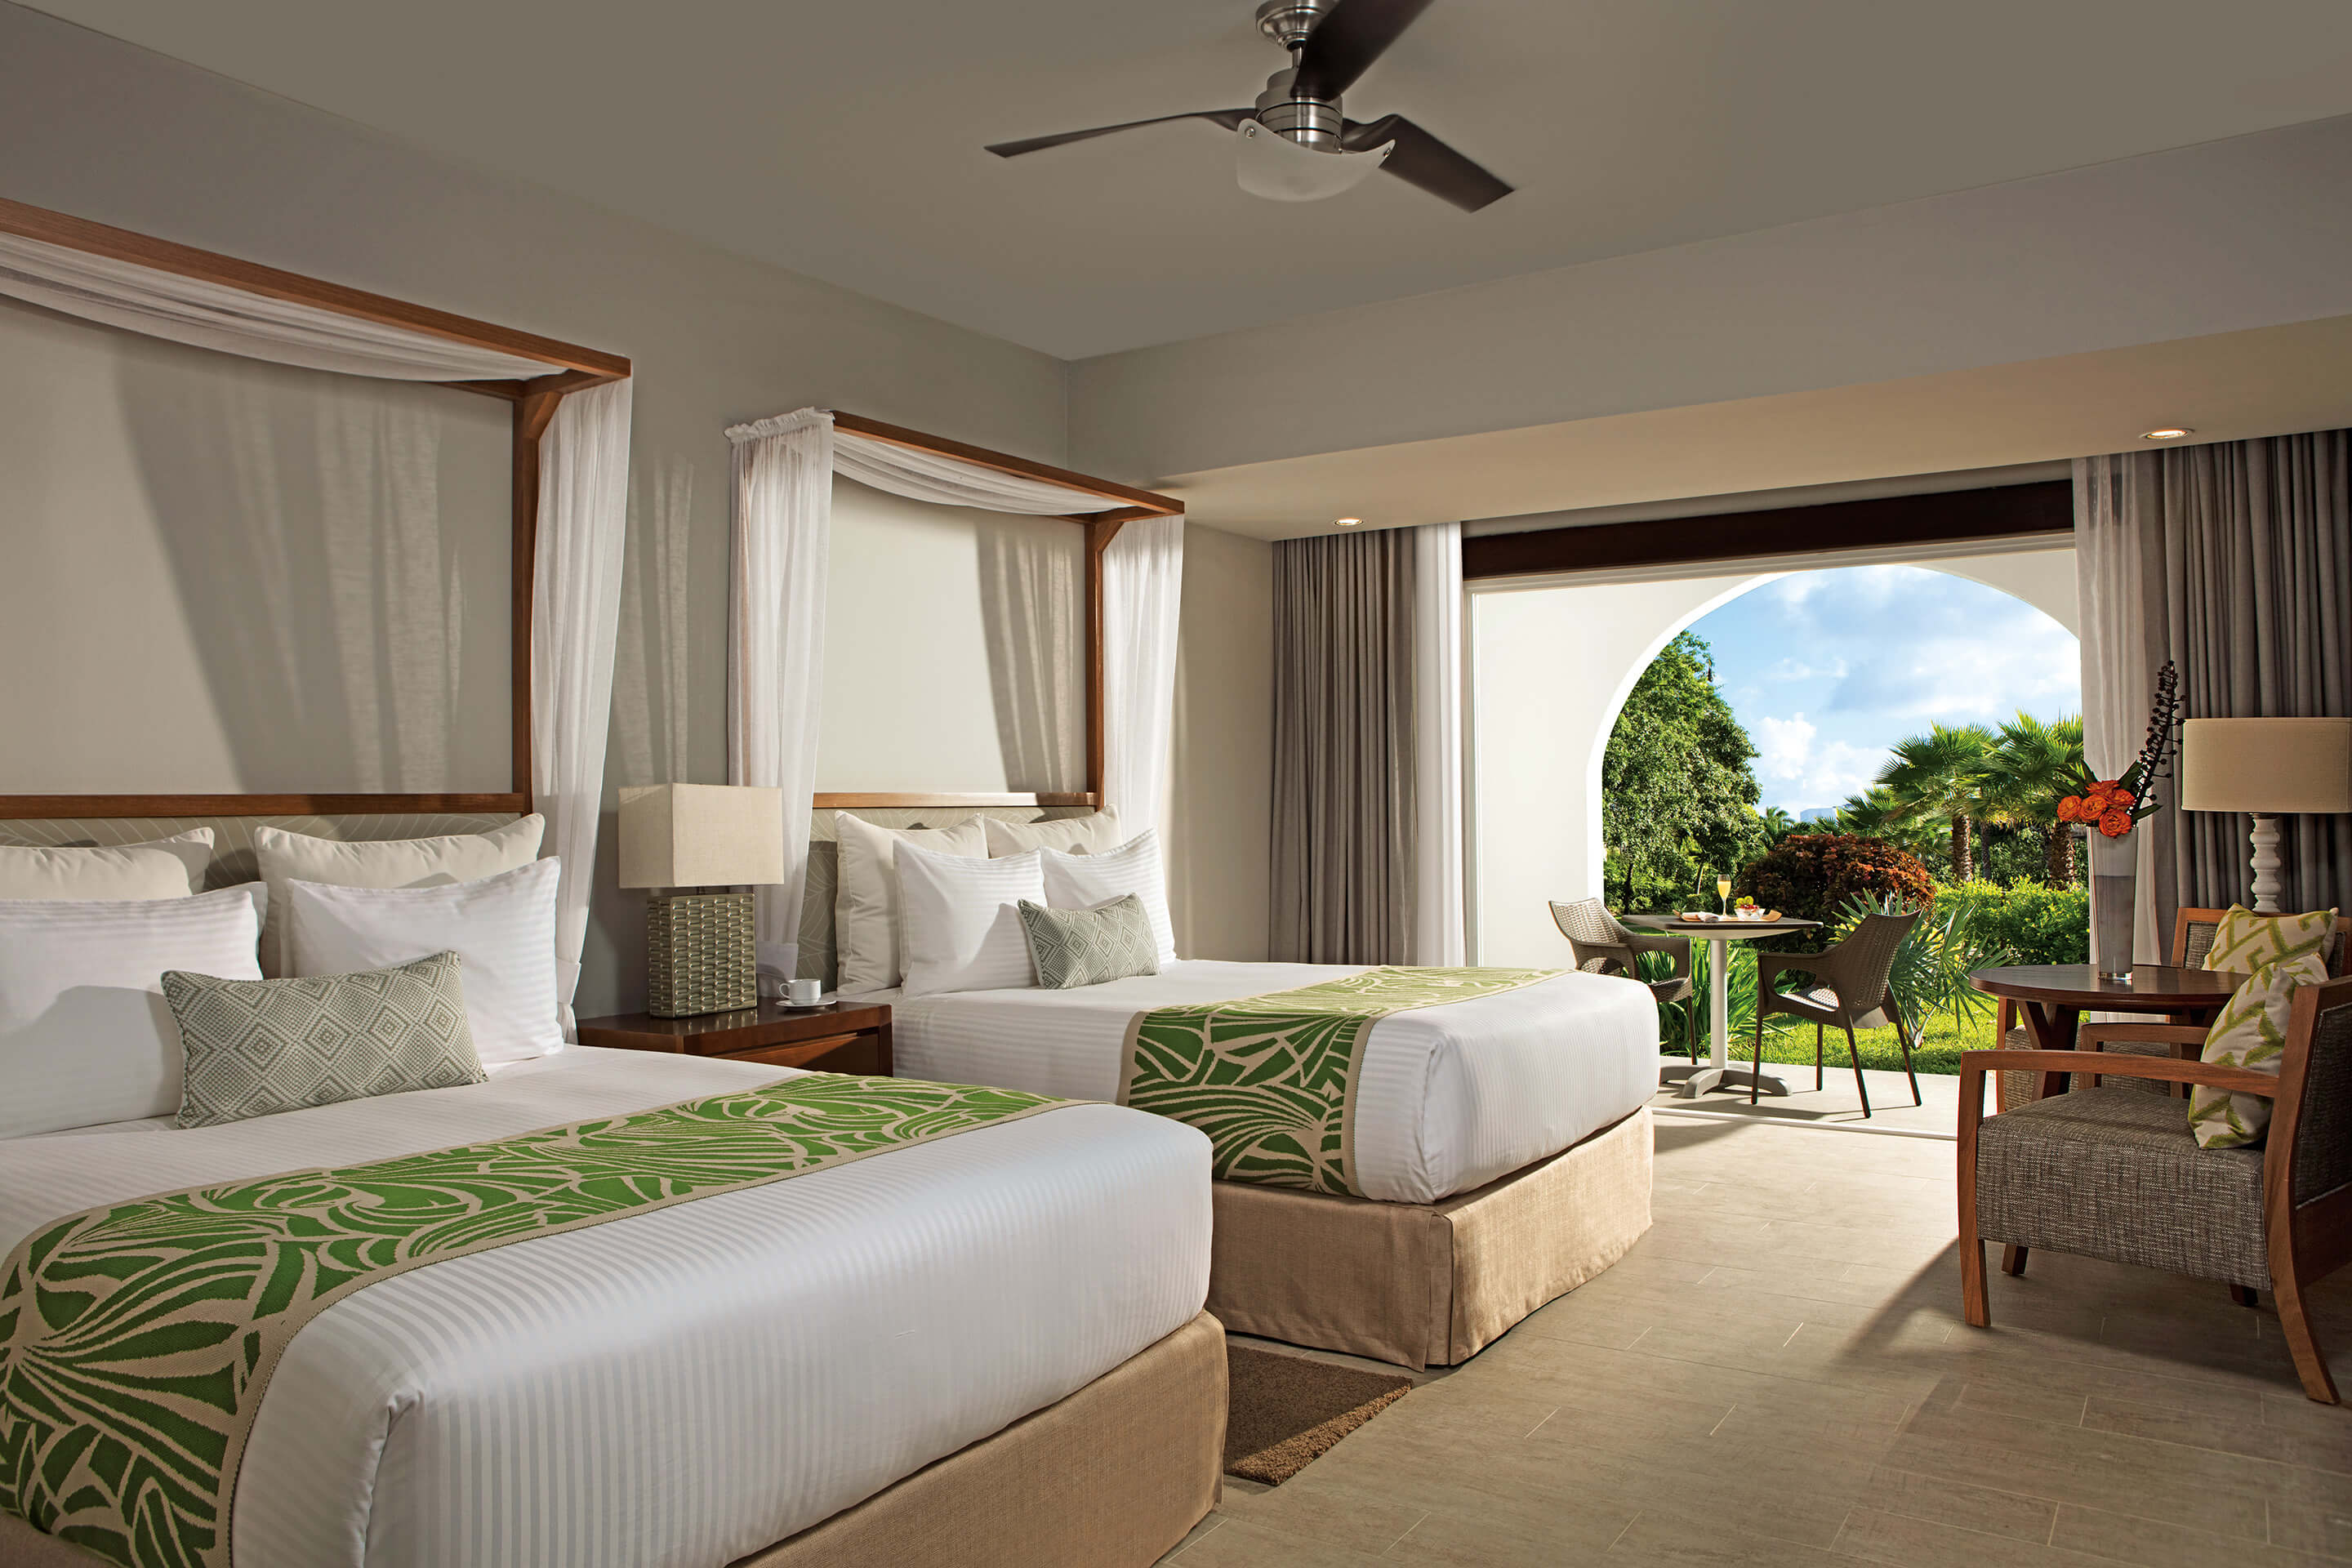 Dreams Dominicus La Romana - Deluxe Tropical View Room - Beds